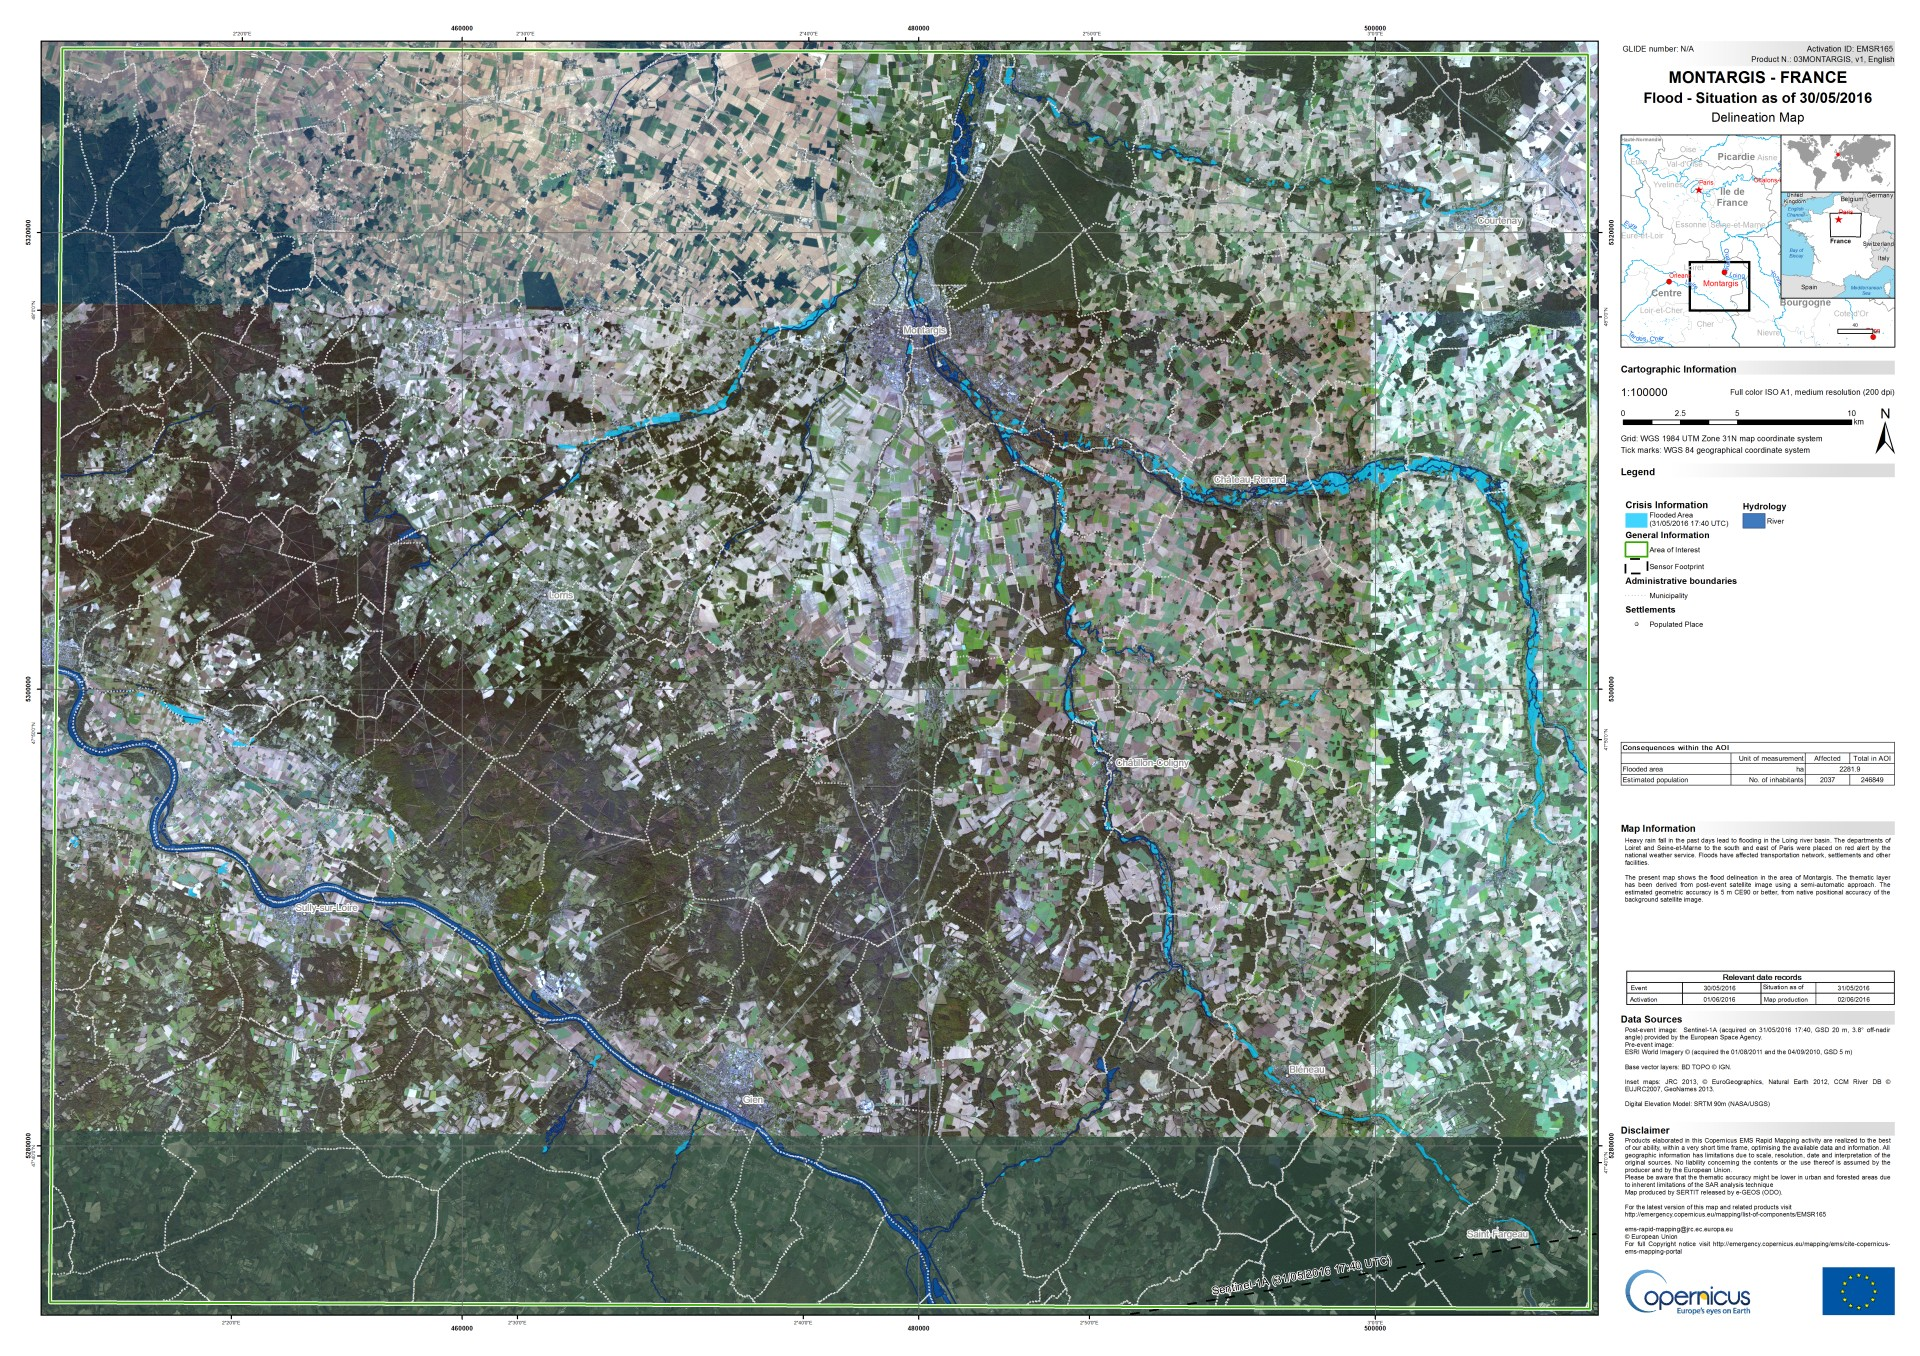 Copernicus - EMS - Emergency - EMSR165 - France - floods - Inondations - Juin 2016